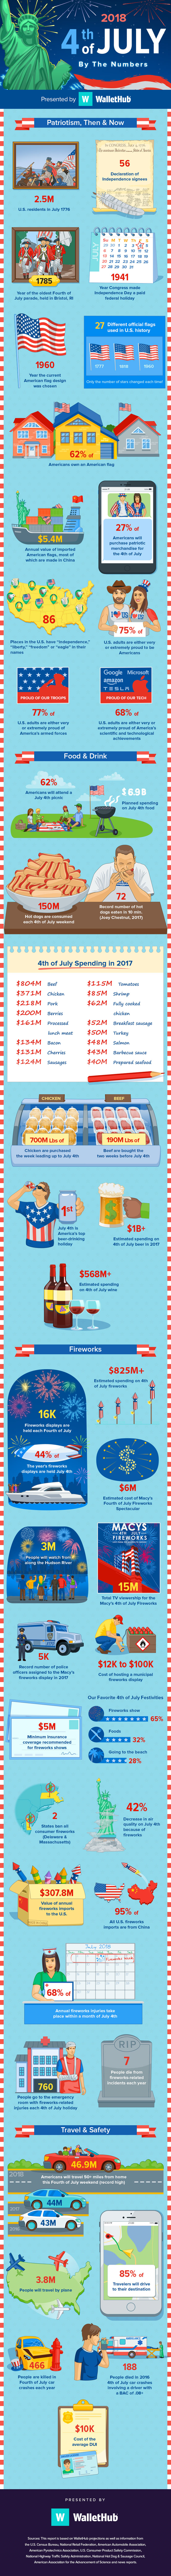 Fourth of July Fascinating Facts